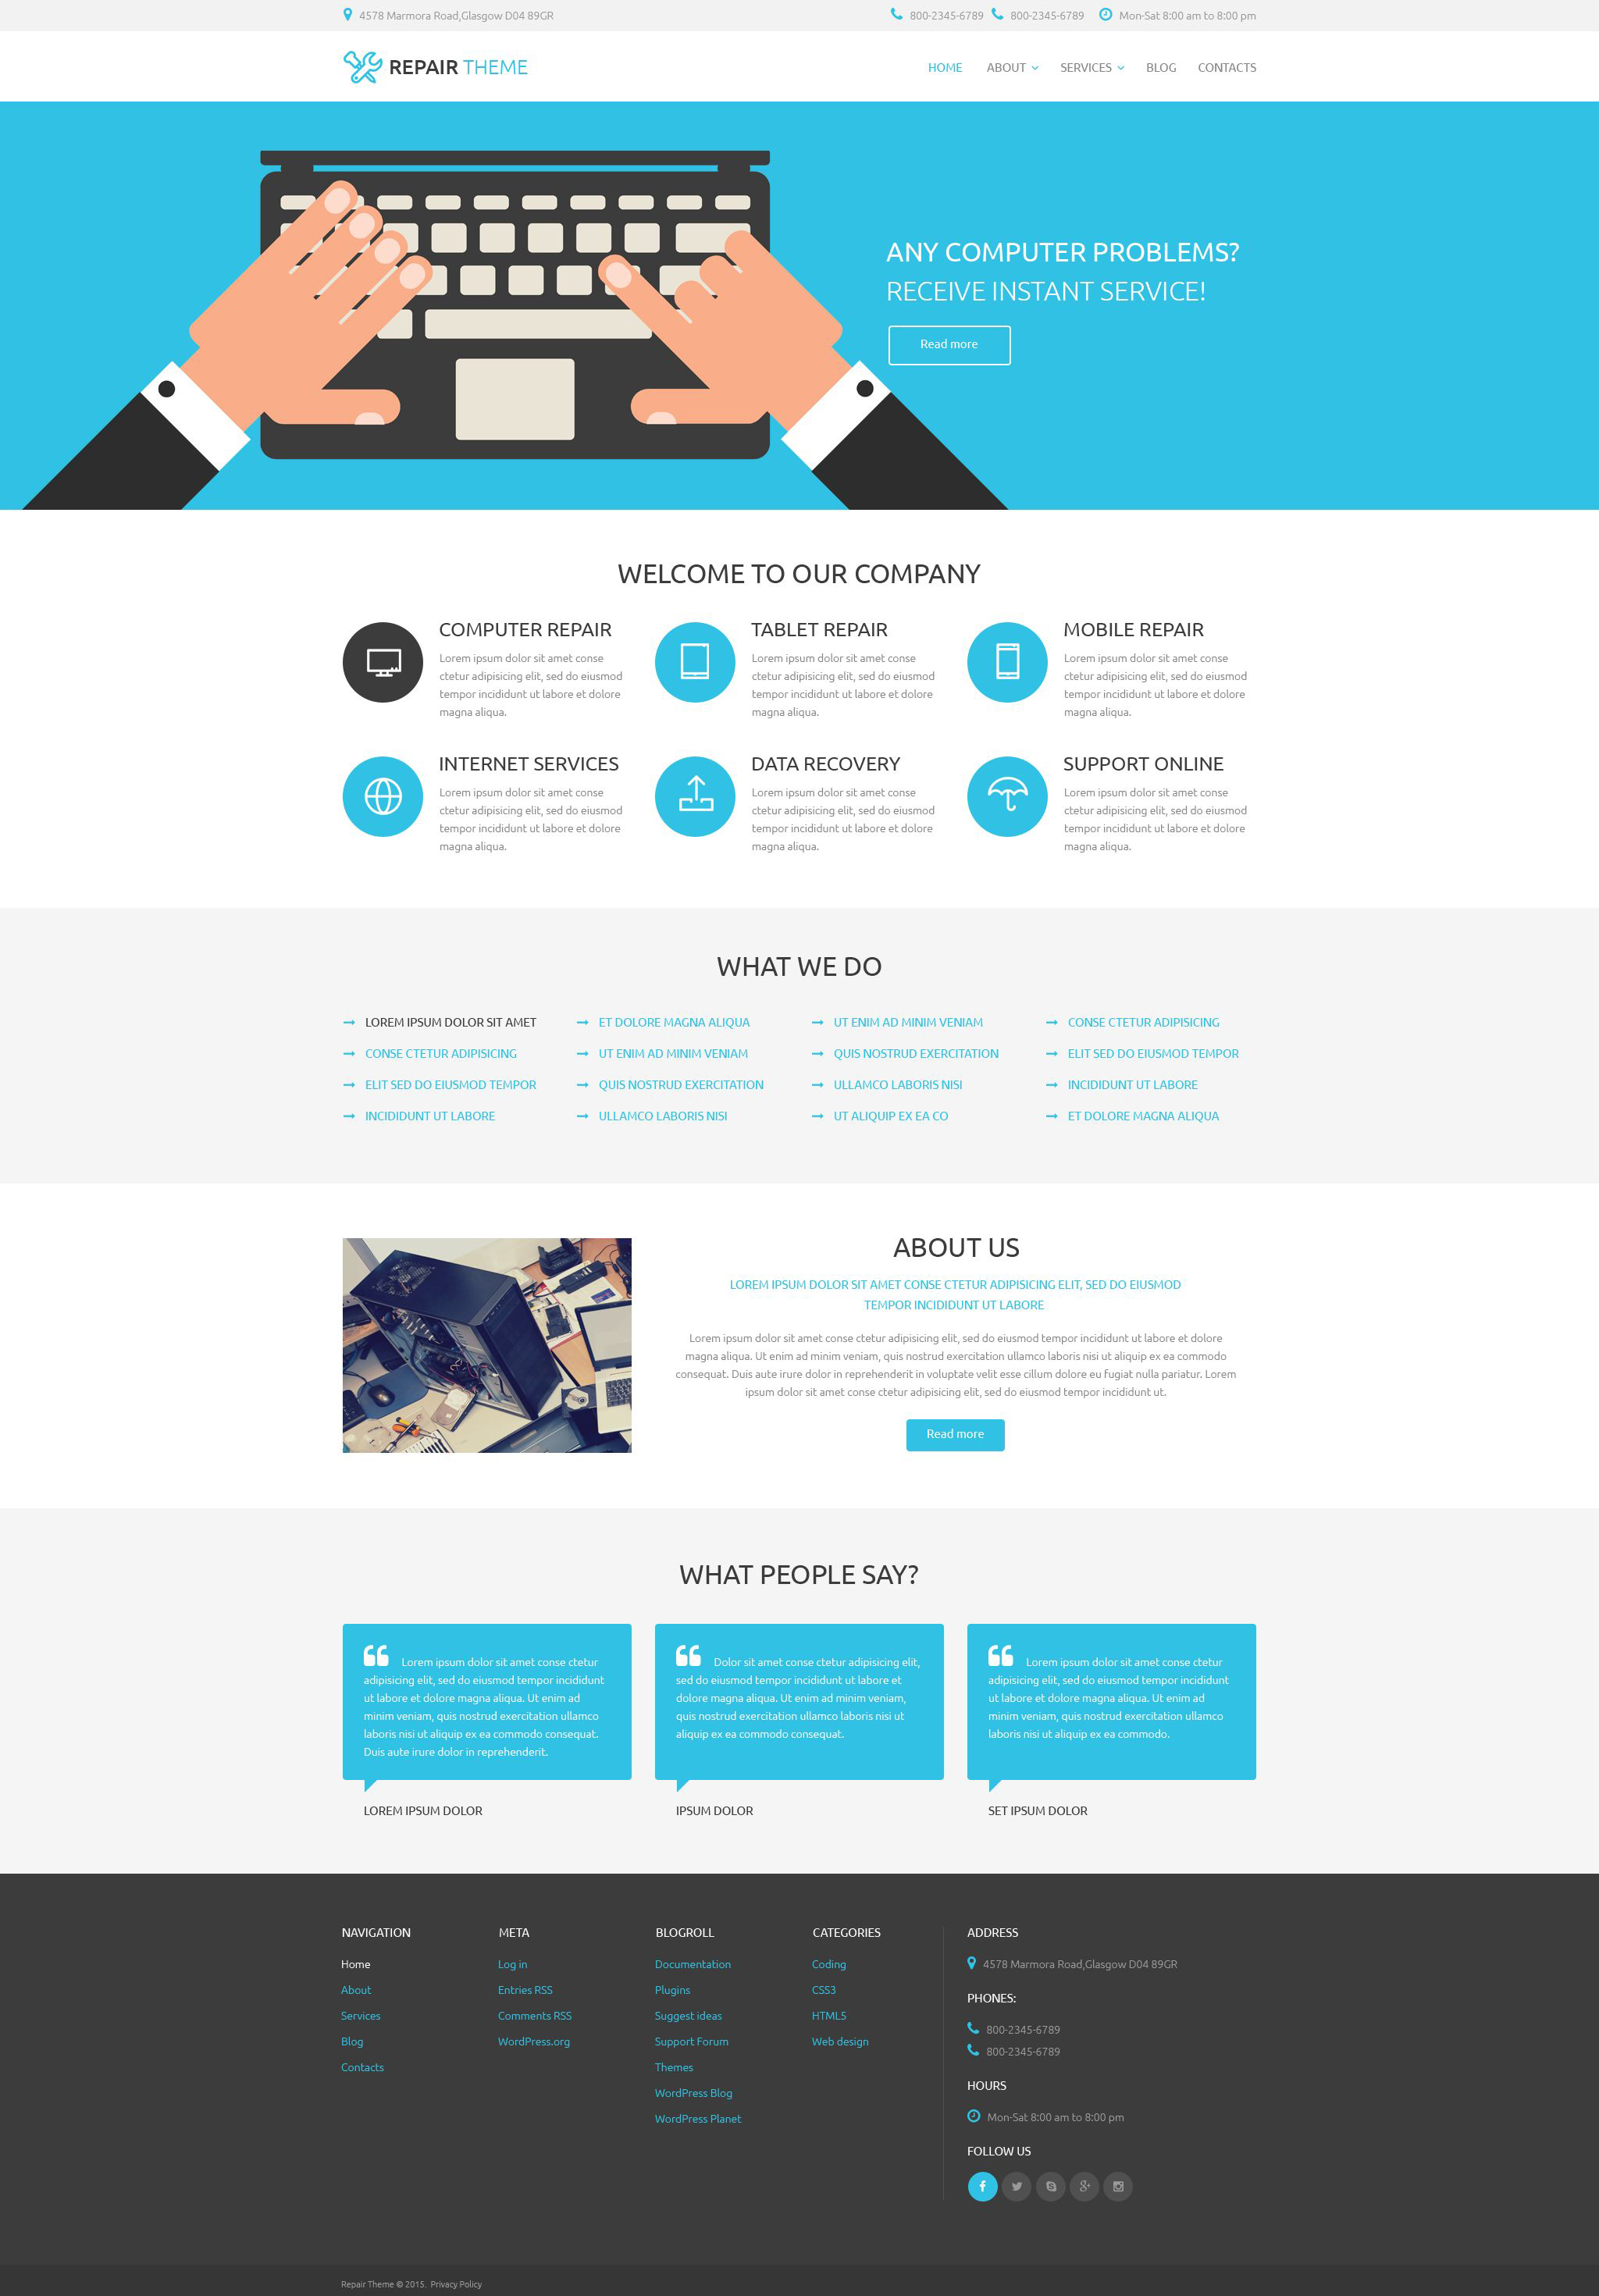 The Computer Repair WordPress Design 53761, one of the best WordPress themes of its kind (software, most popular), also known as computer repair WordPress template, problems WordPress template, help WordPress template, monitor WordPress template, mouse WordPress template, prices WordPress template, pricelist WordPress template, data WordPress template, recovery WordPress template, electronics WordPress template, osc WordPress template, usb WordPress template, OS/2 Windows Linux and related with computer repair, problems, help, monitor, mouse, prices, pricelist, data, recovery, electronics, osc, usb, OS/2 Windows Linux, etc.